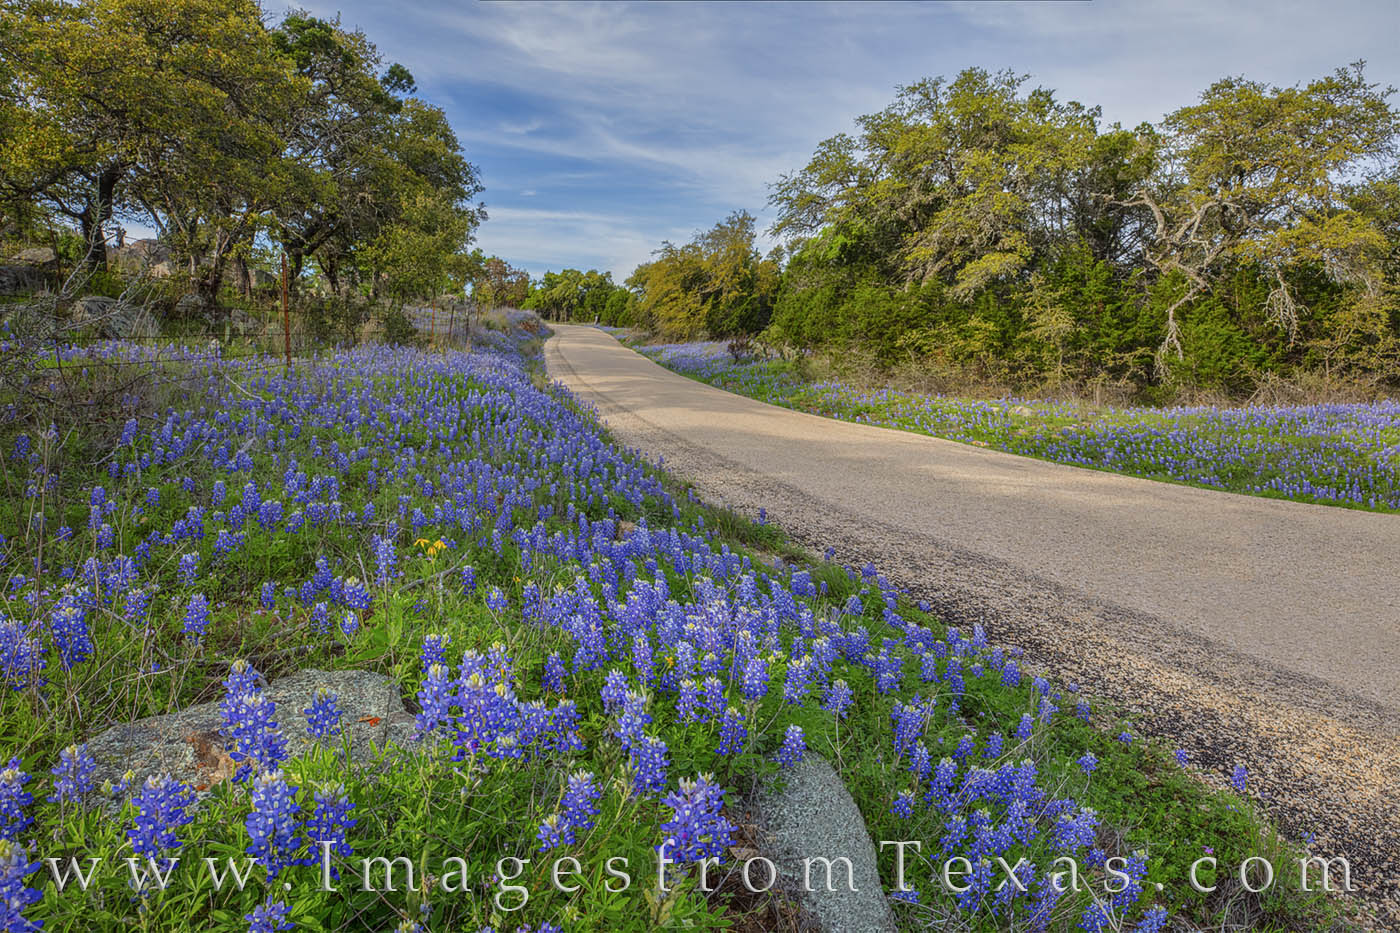 bluebonnets, hill country, drives, bluebonnet prints, for sale, afternoon, scenic drives, photo